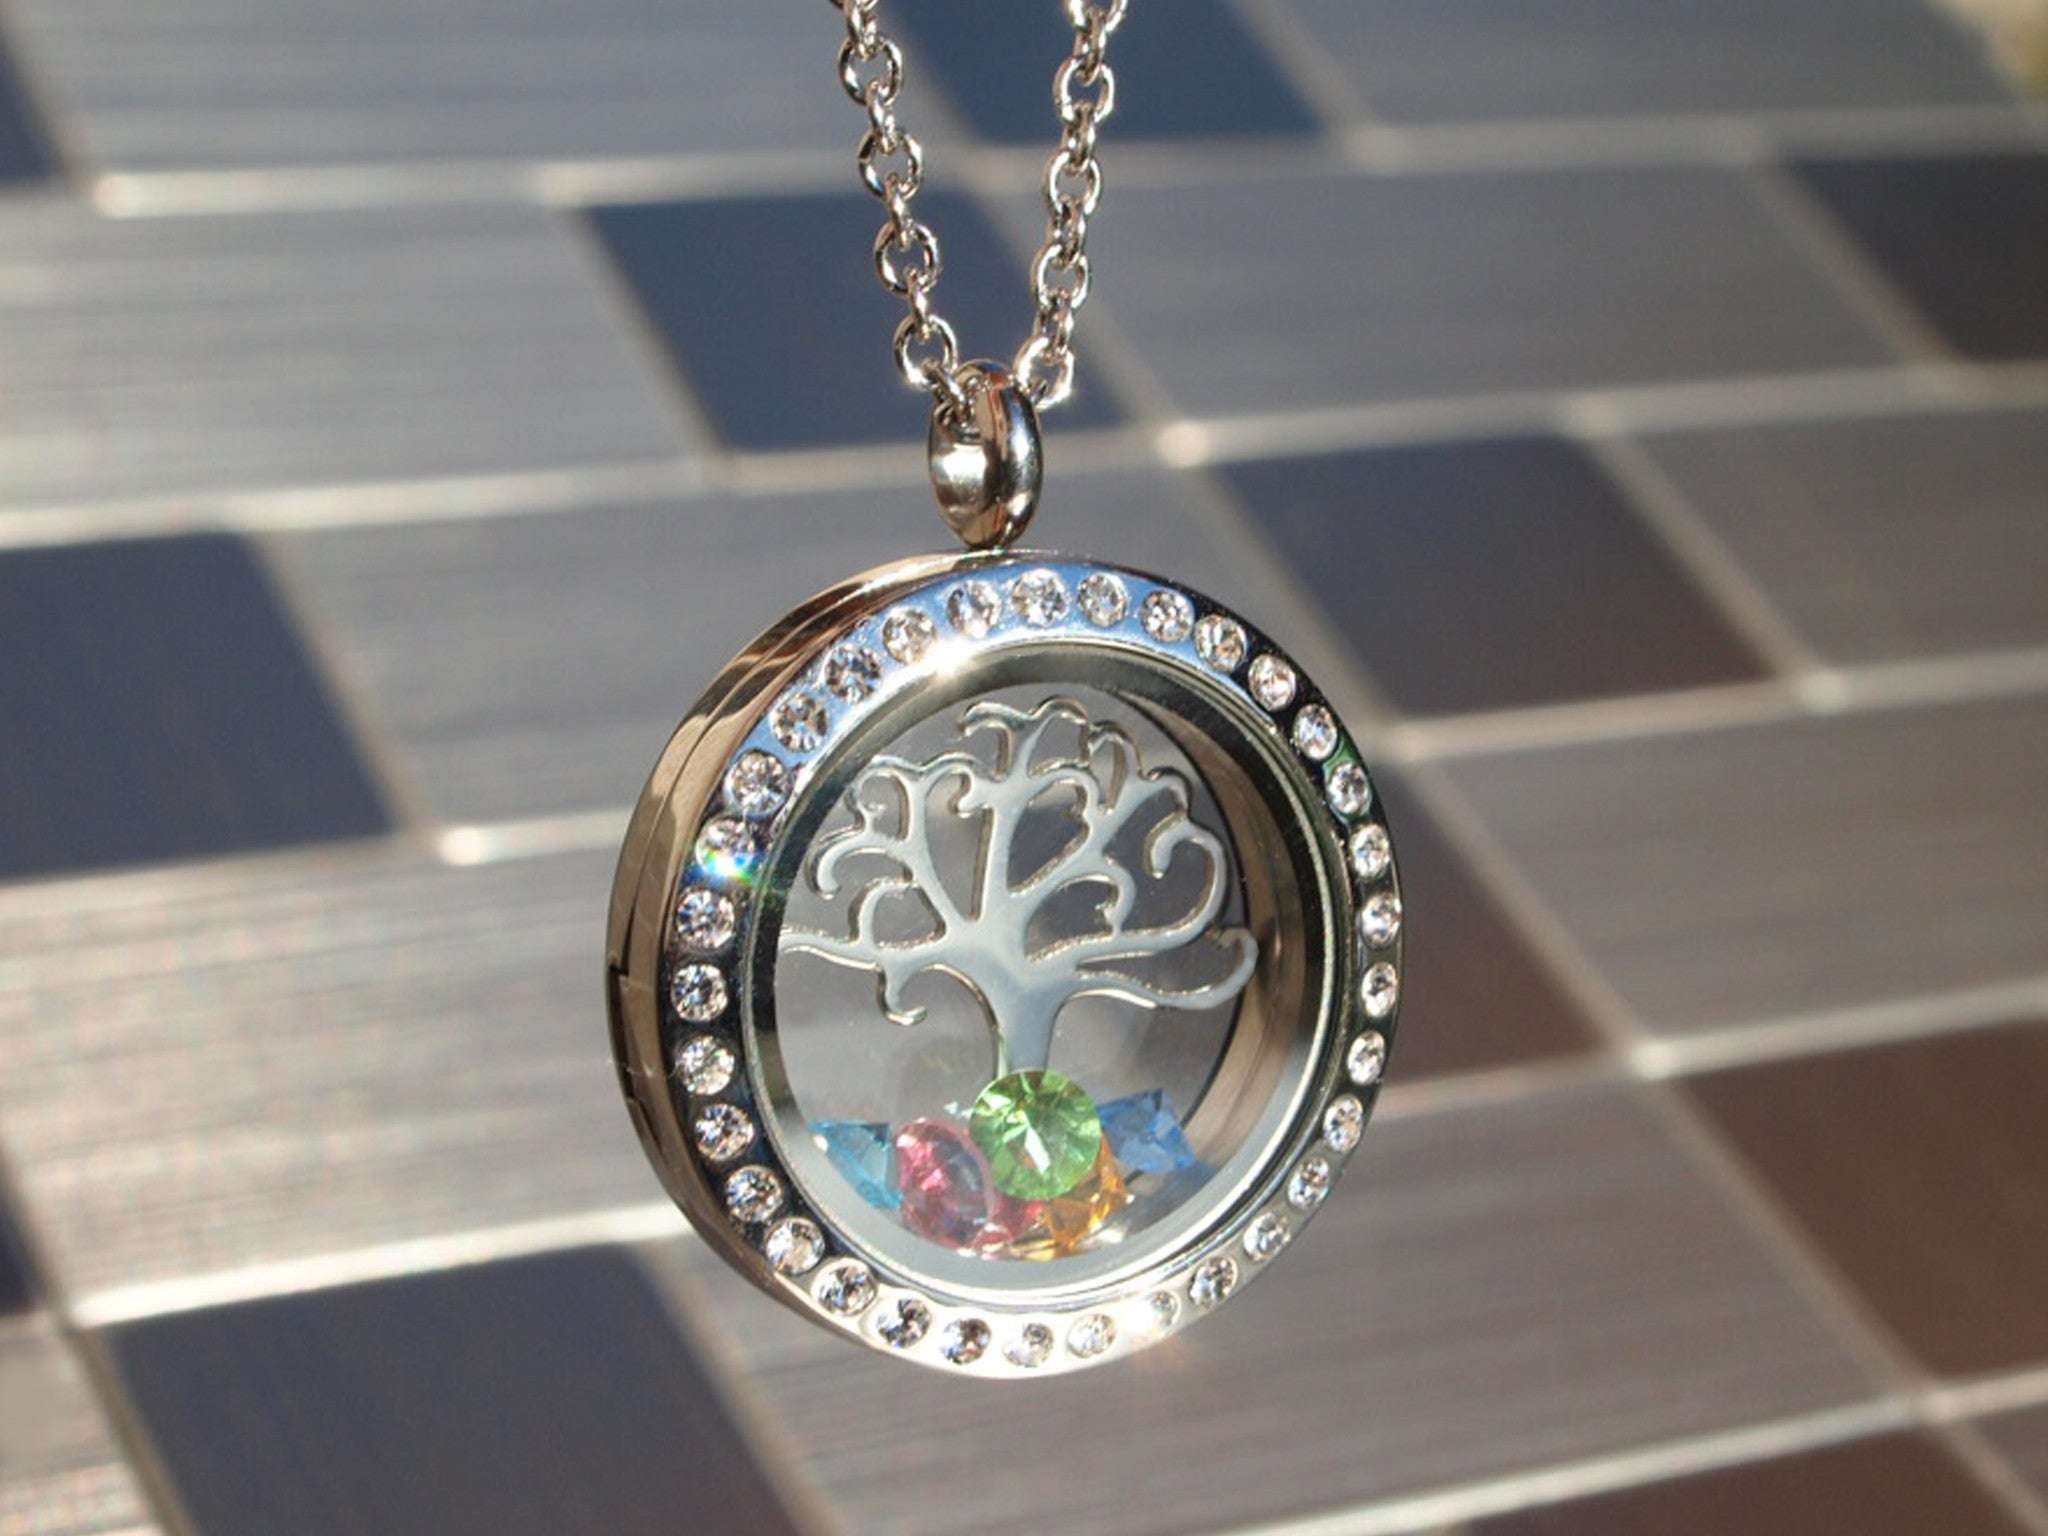 necklace silver tree hand sterling familytreenecklacecustomtreedesign personalised stamped family store pendant